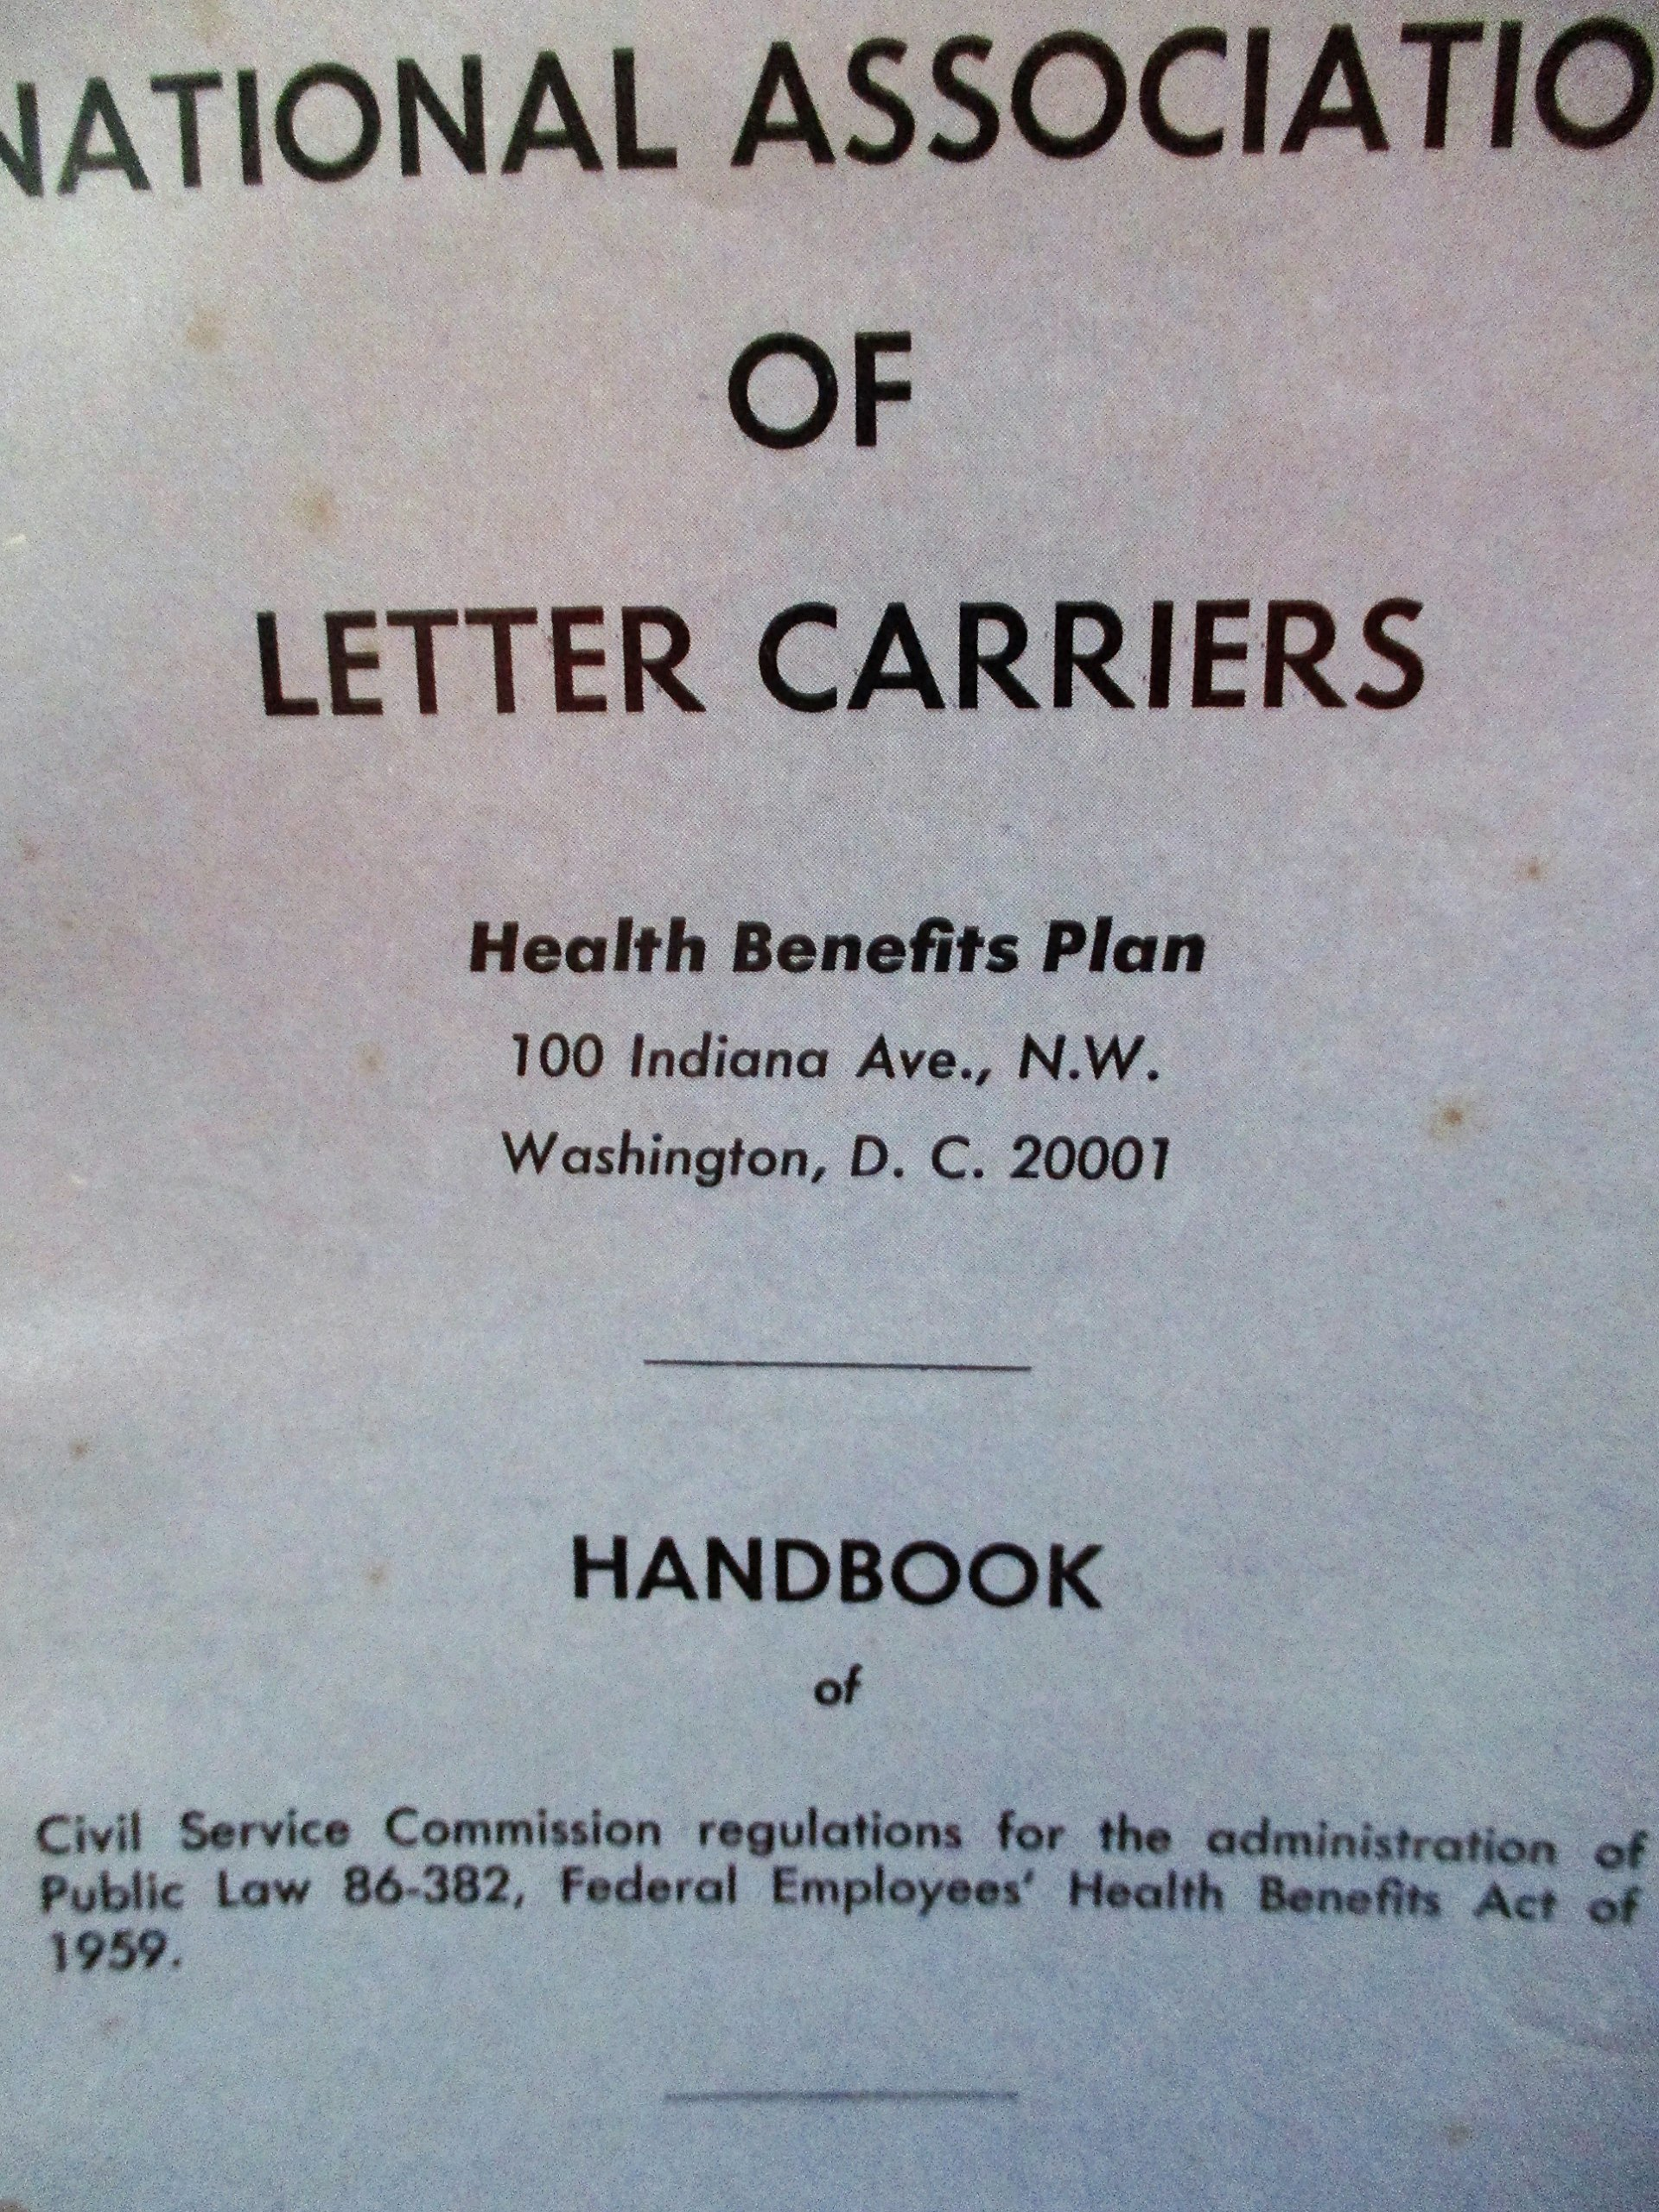 National Association of Letter Carriers Health Benefits Plan 1969